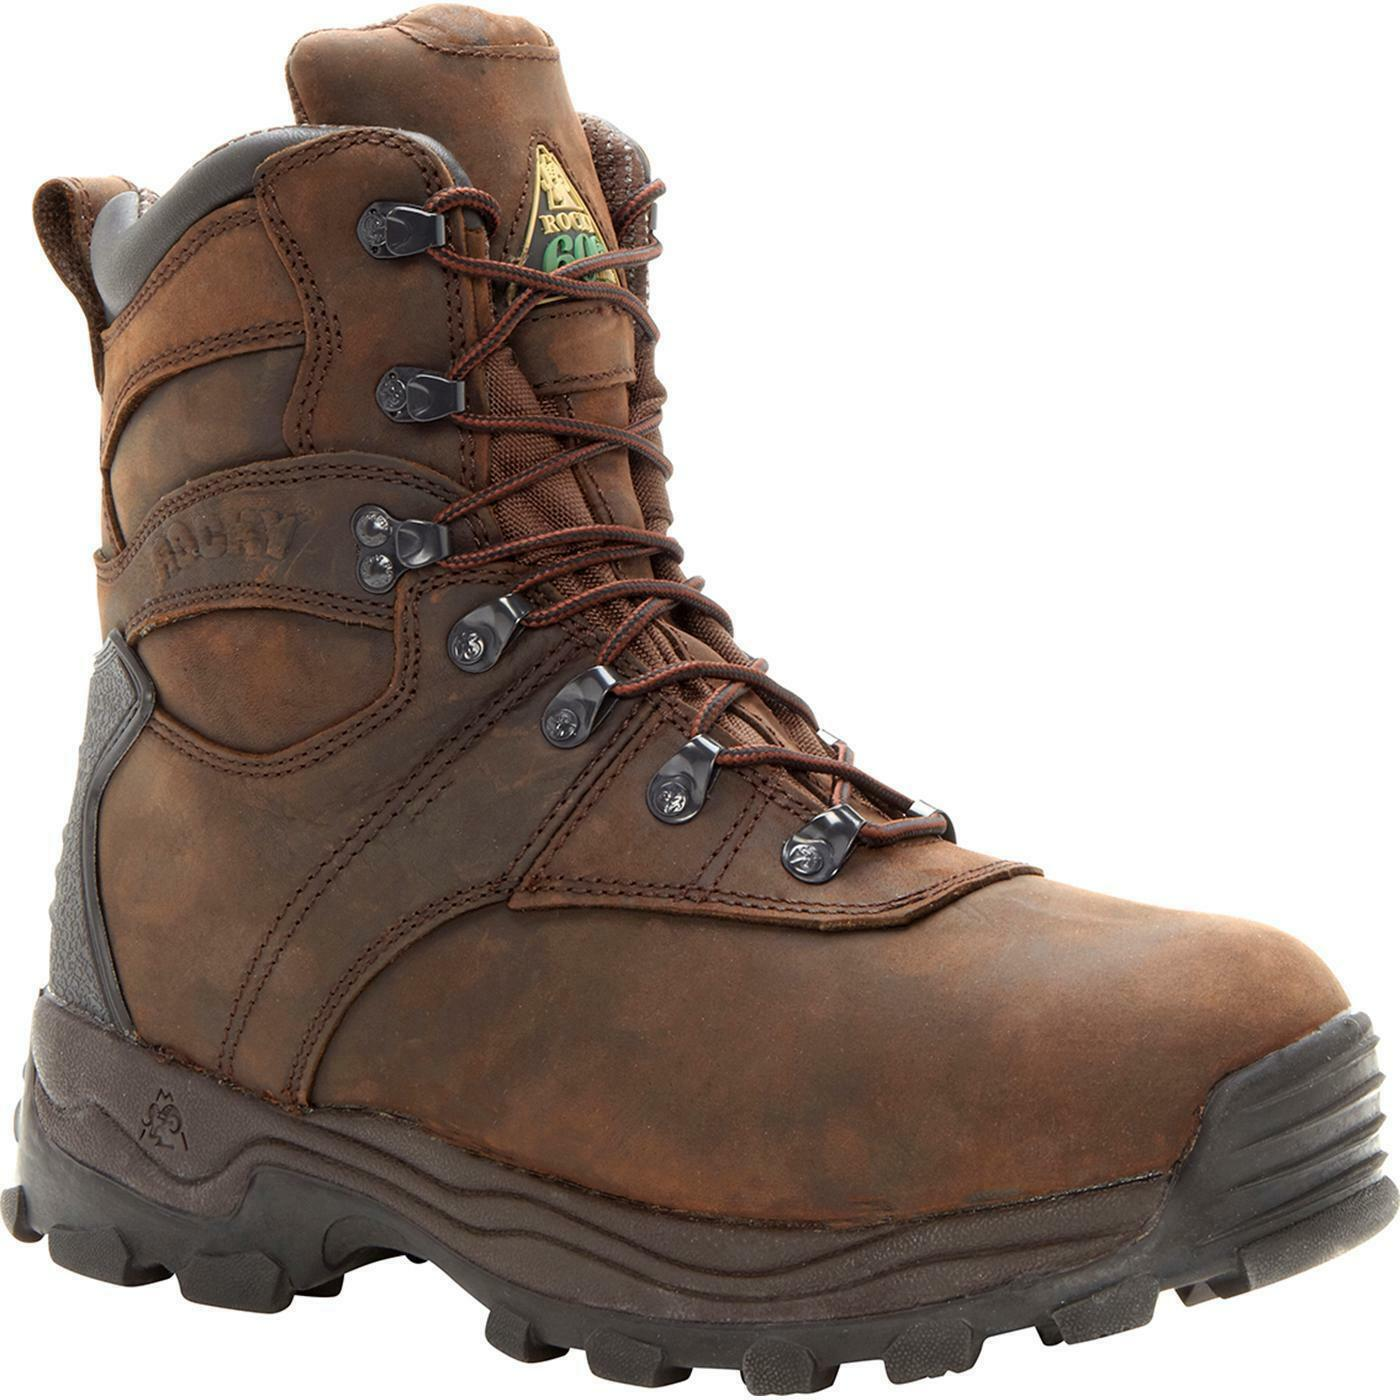 Rocky 7480 Sport Utility Pro 600g Insulated Lace Up Waterproof 6  Work Boot